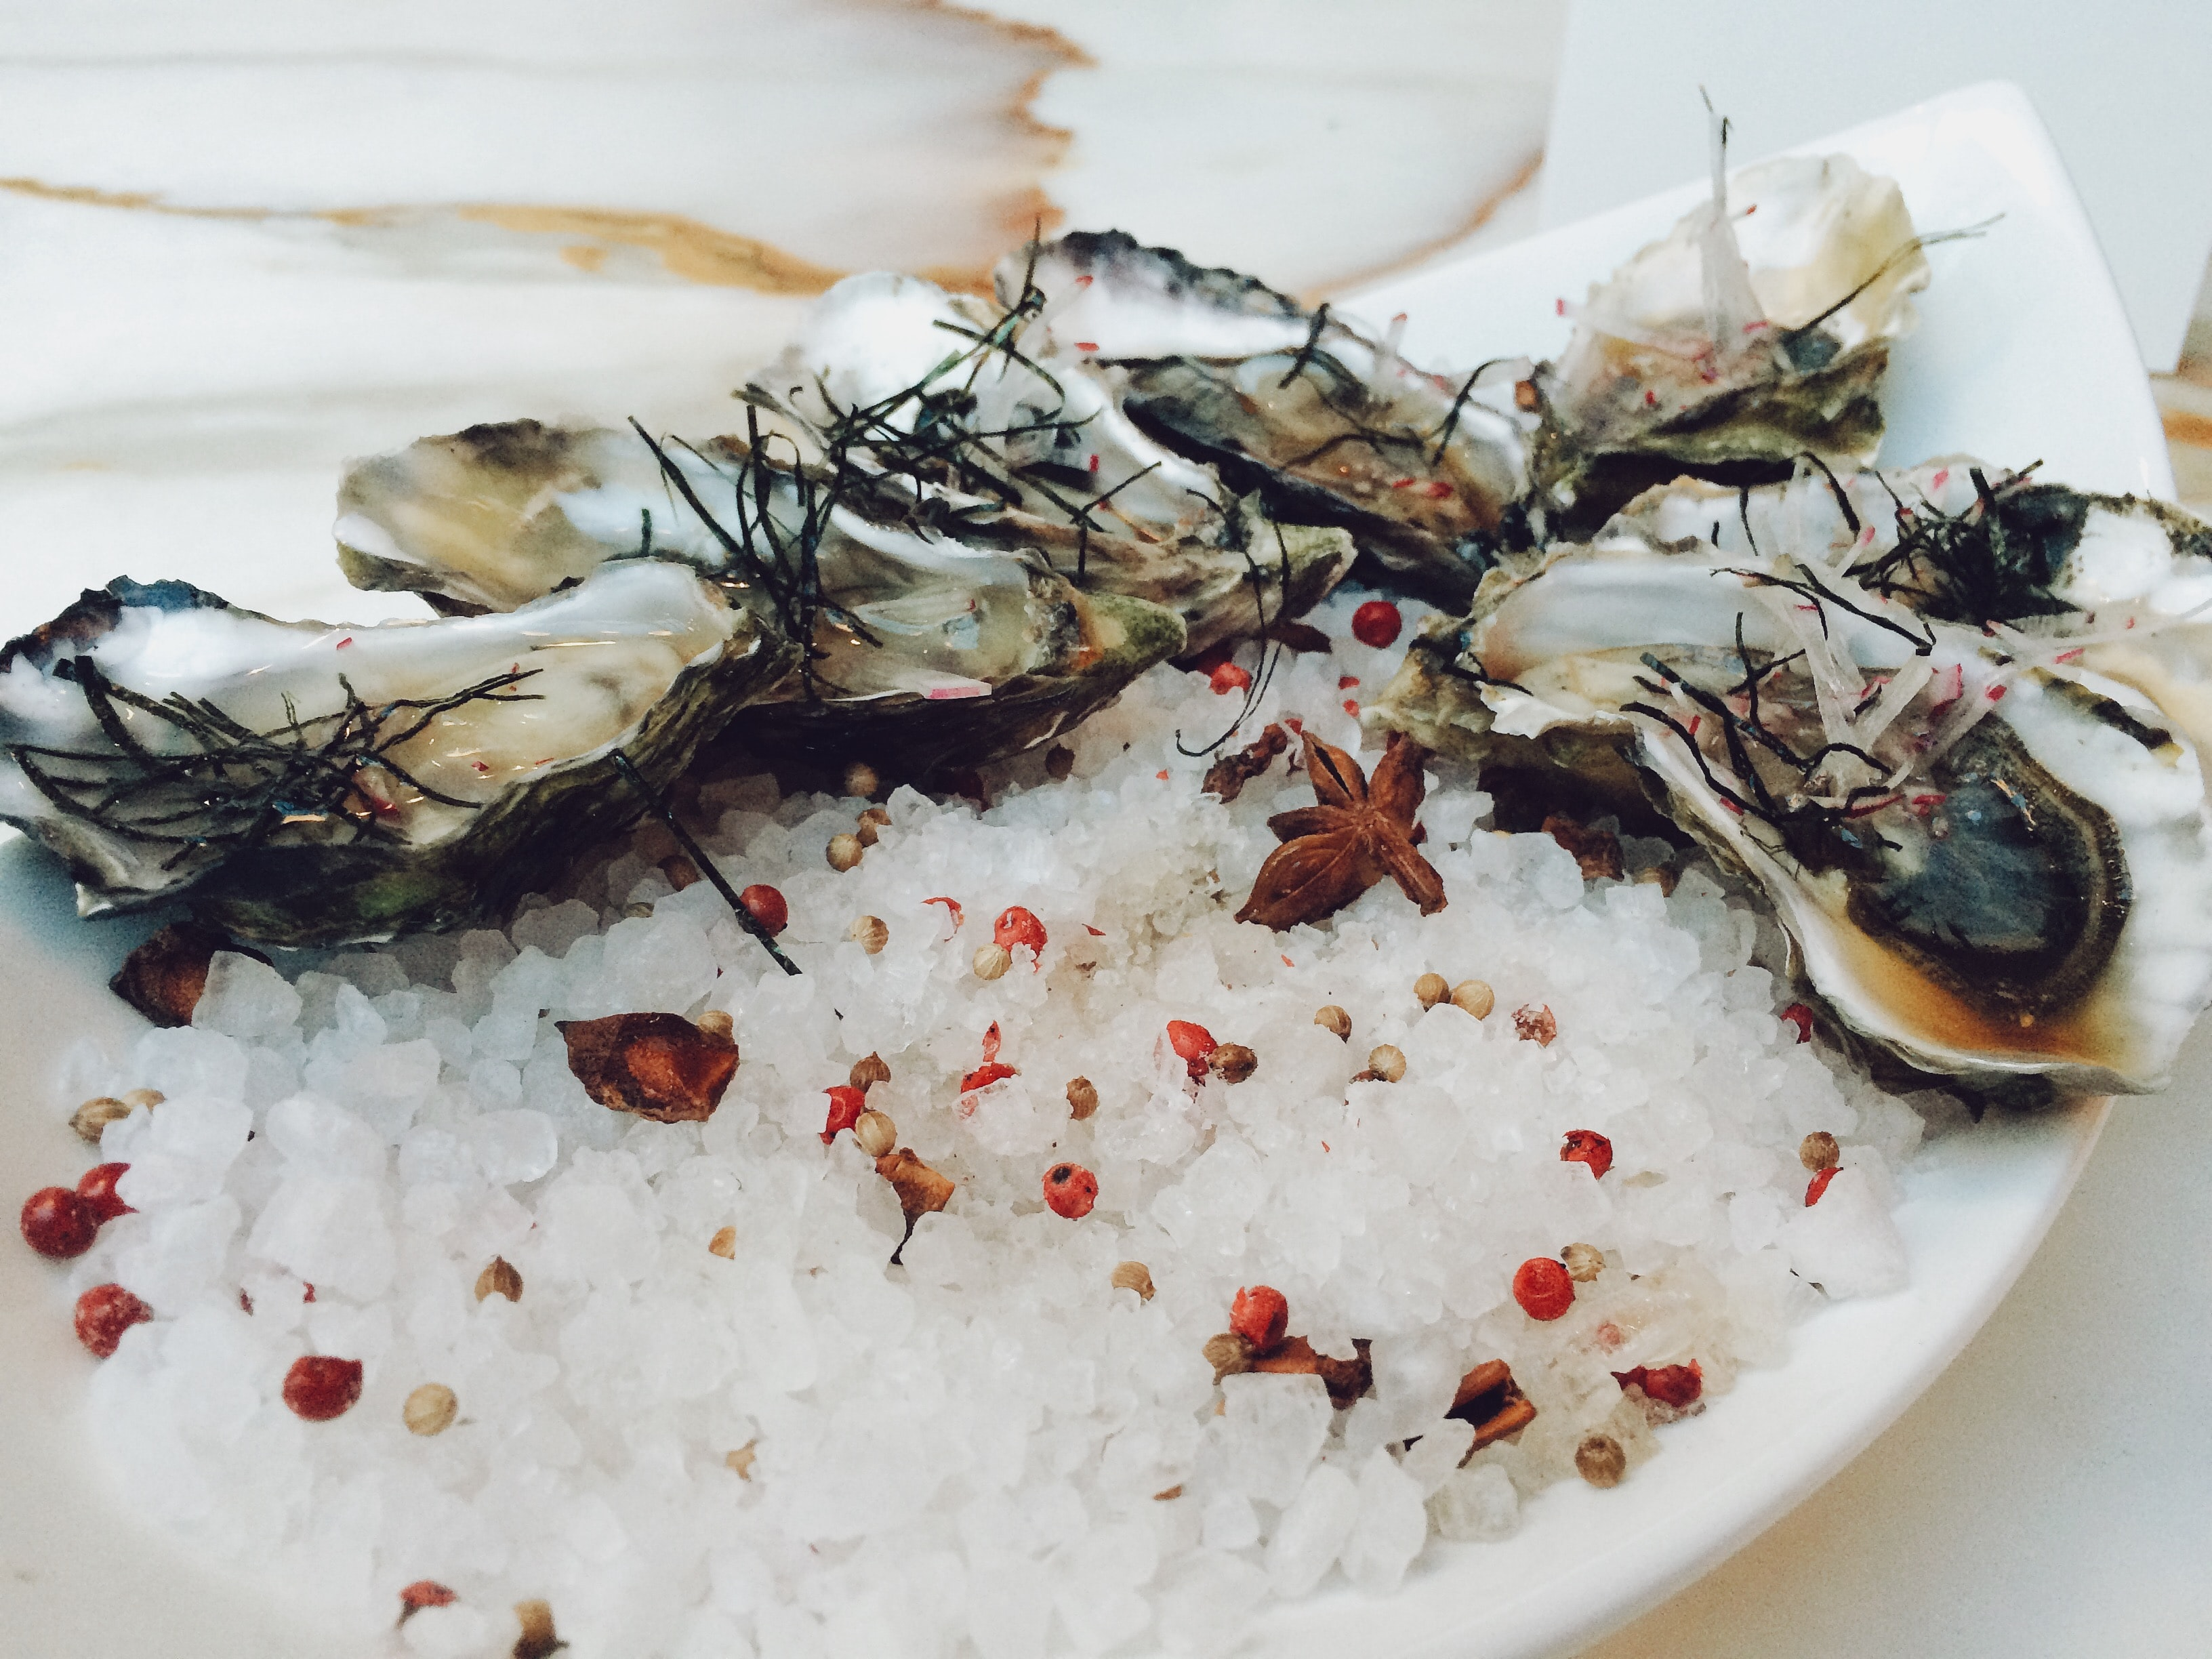 Plate of oysters and seafood over ice